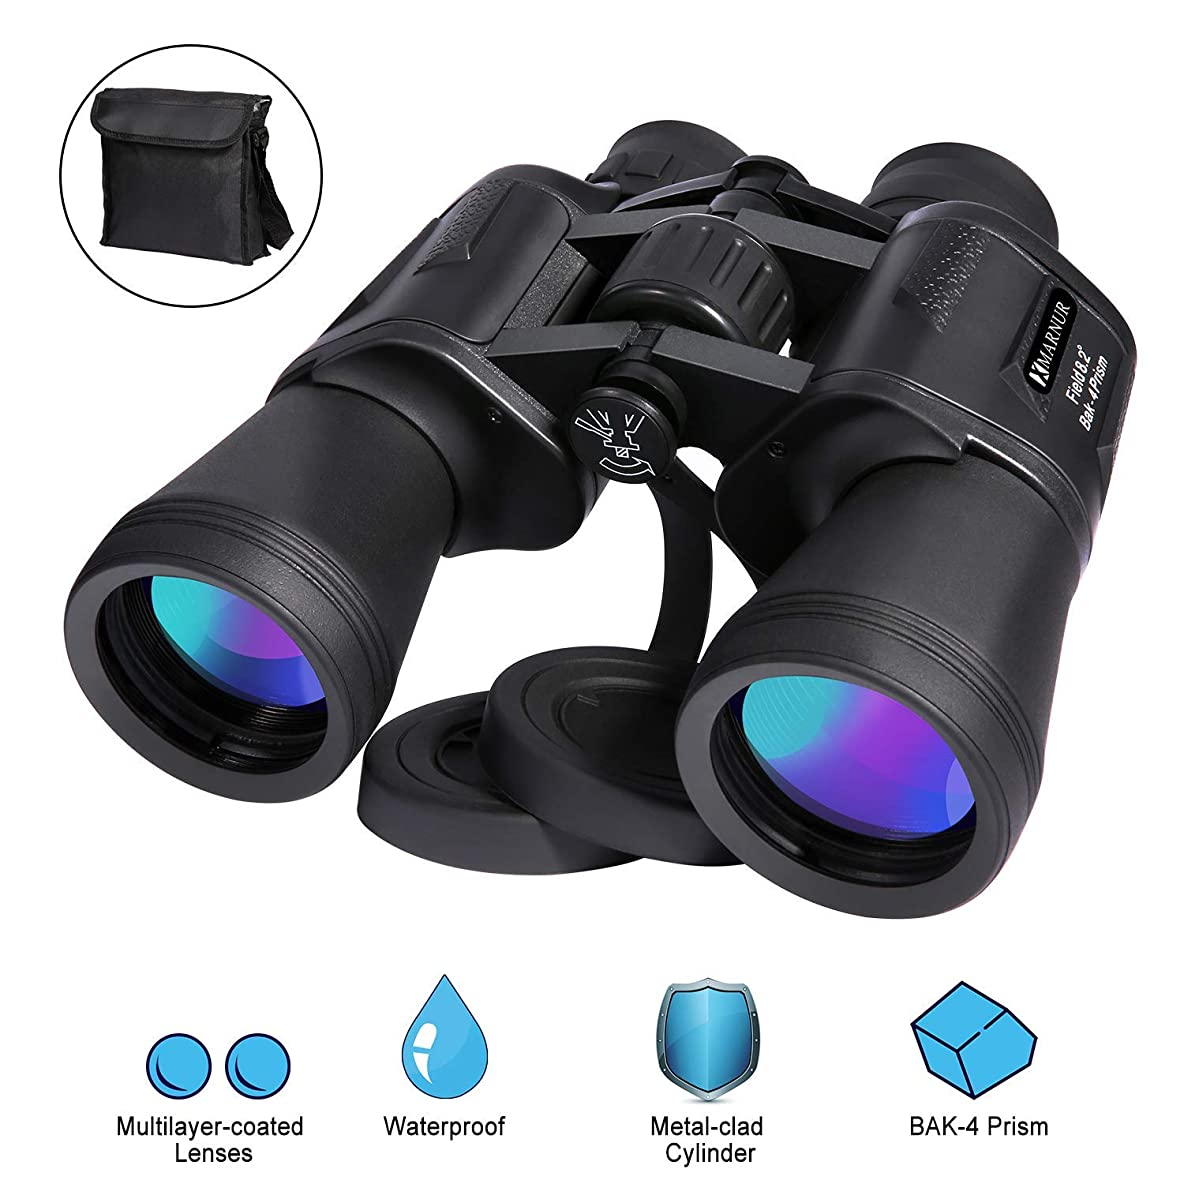 12 x 50 Binoculars for Adults Kids Professional HD Binoculars Compact Lightweight for Birds Watching Hunting Concerts Outdoor Sports Games Travel with Clear Vision & Strap Carrying Bag